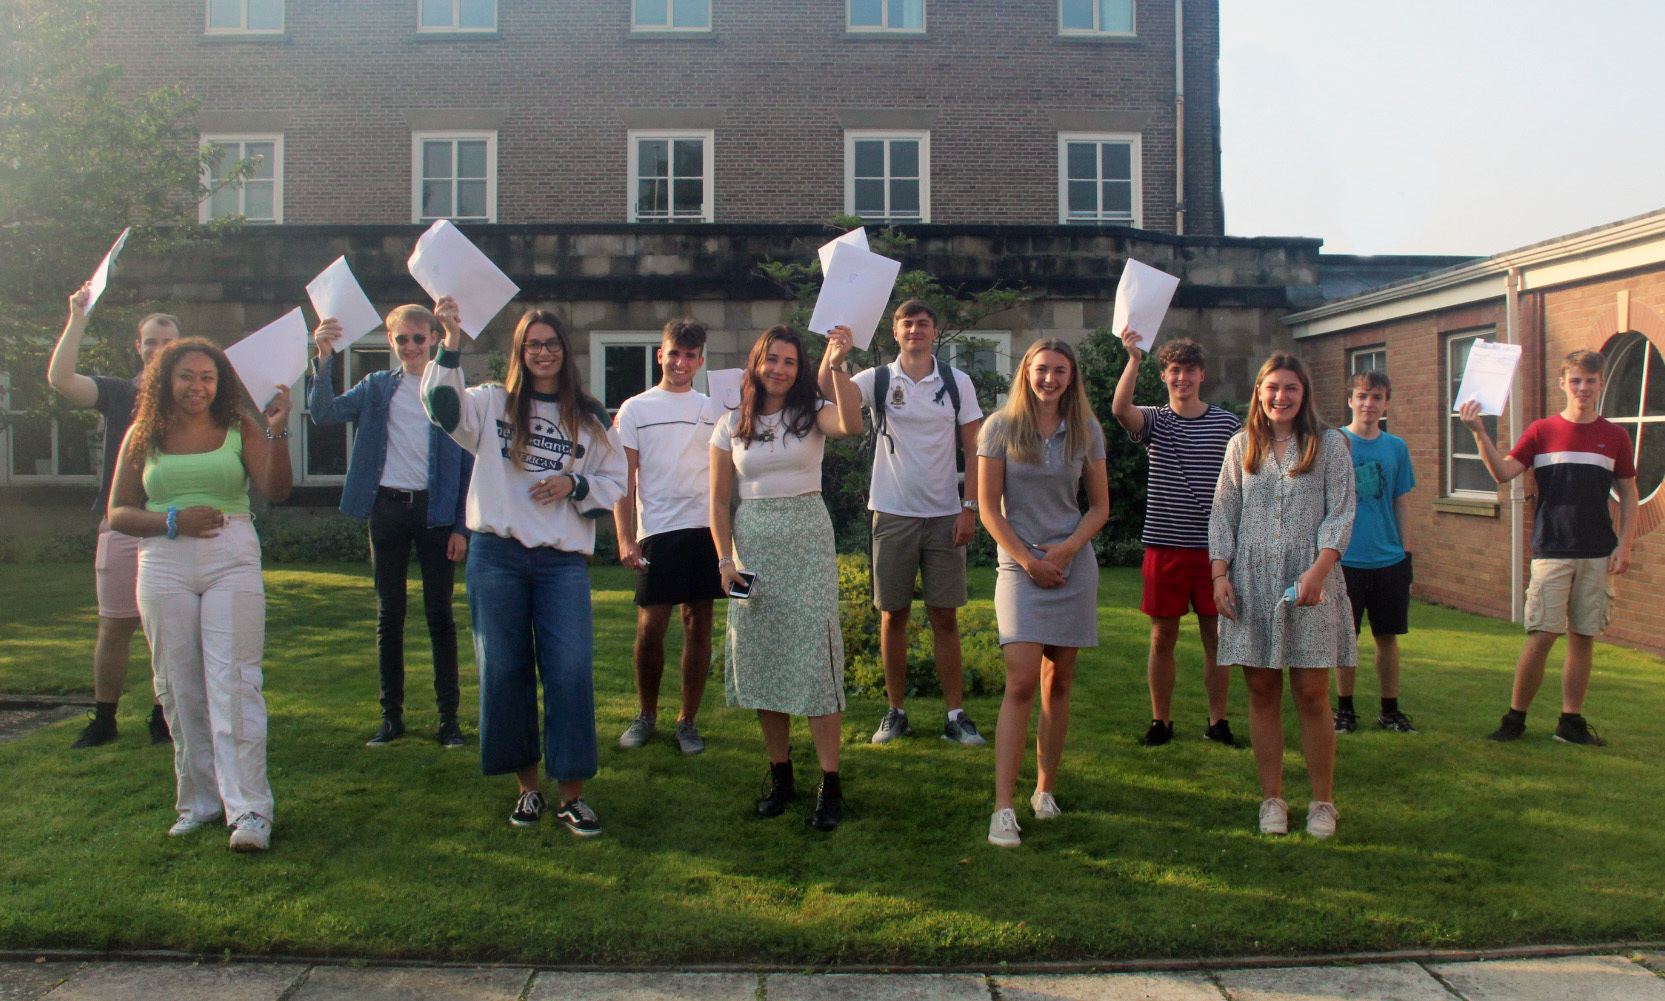 A Levels 2020: King's School Chester students secure top university places